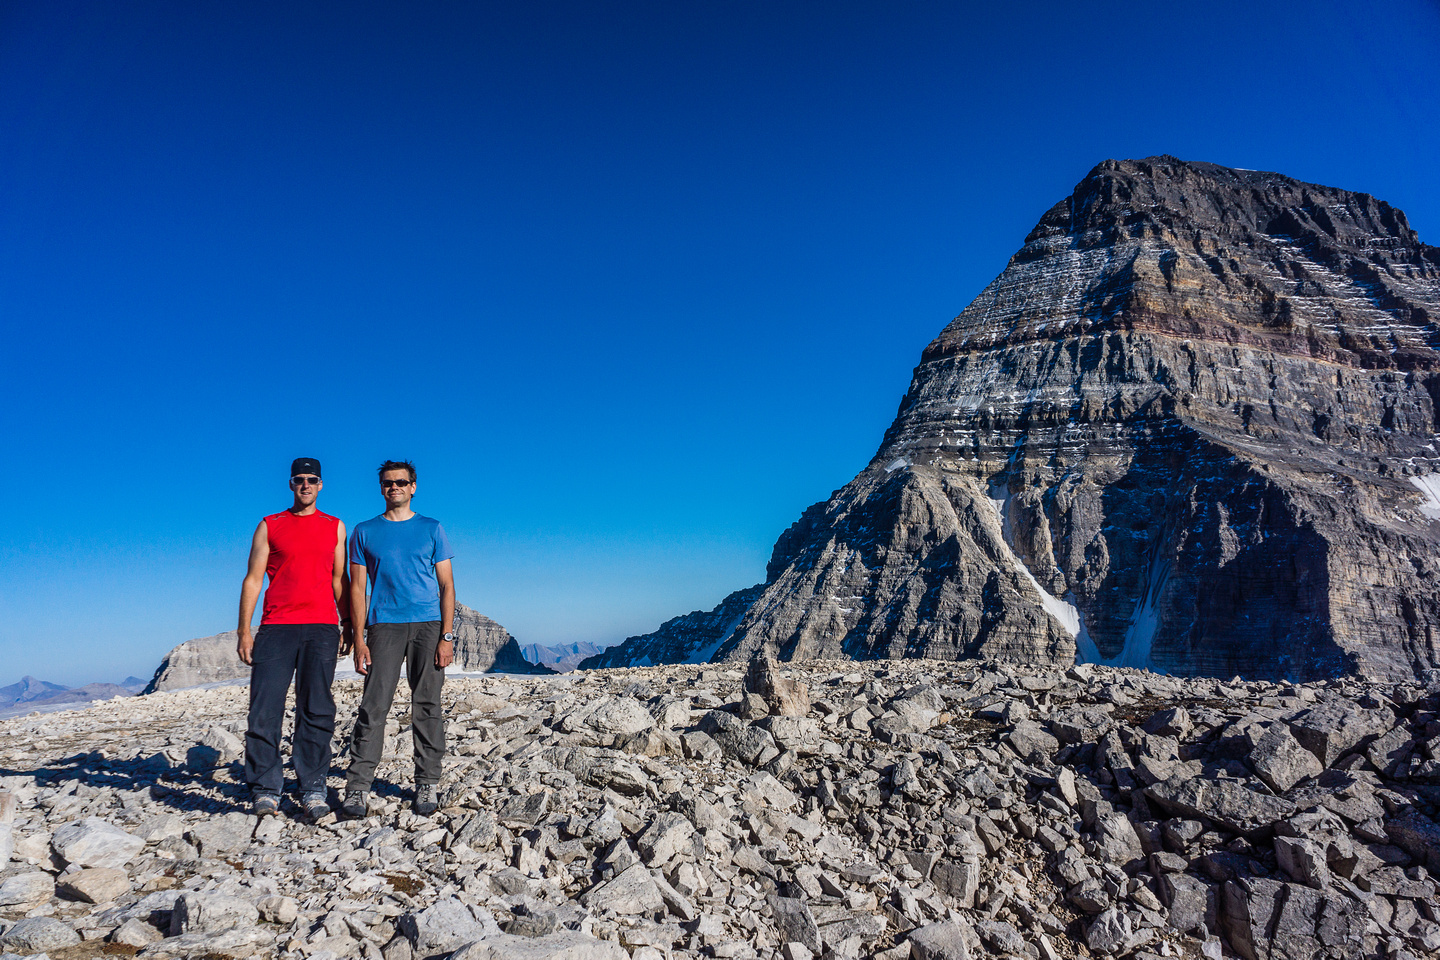 Vern and Kev on the summit of Strom with Assiniboine looming over 600 meters (2000 feet) above us.